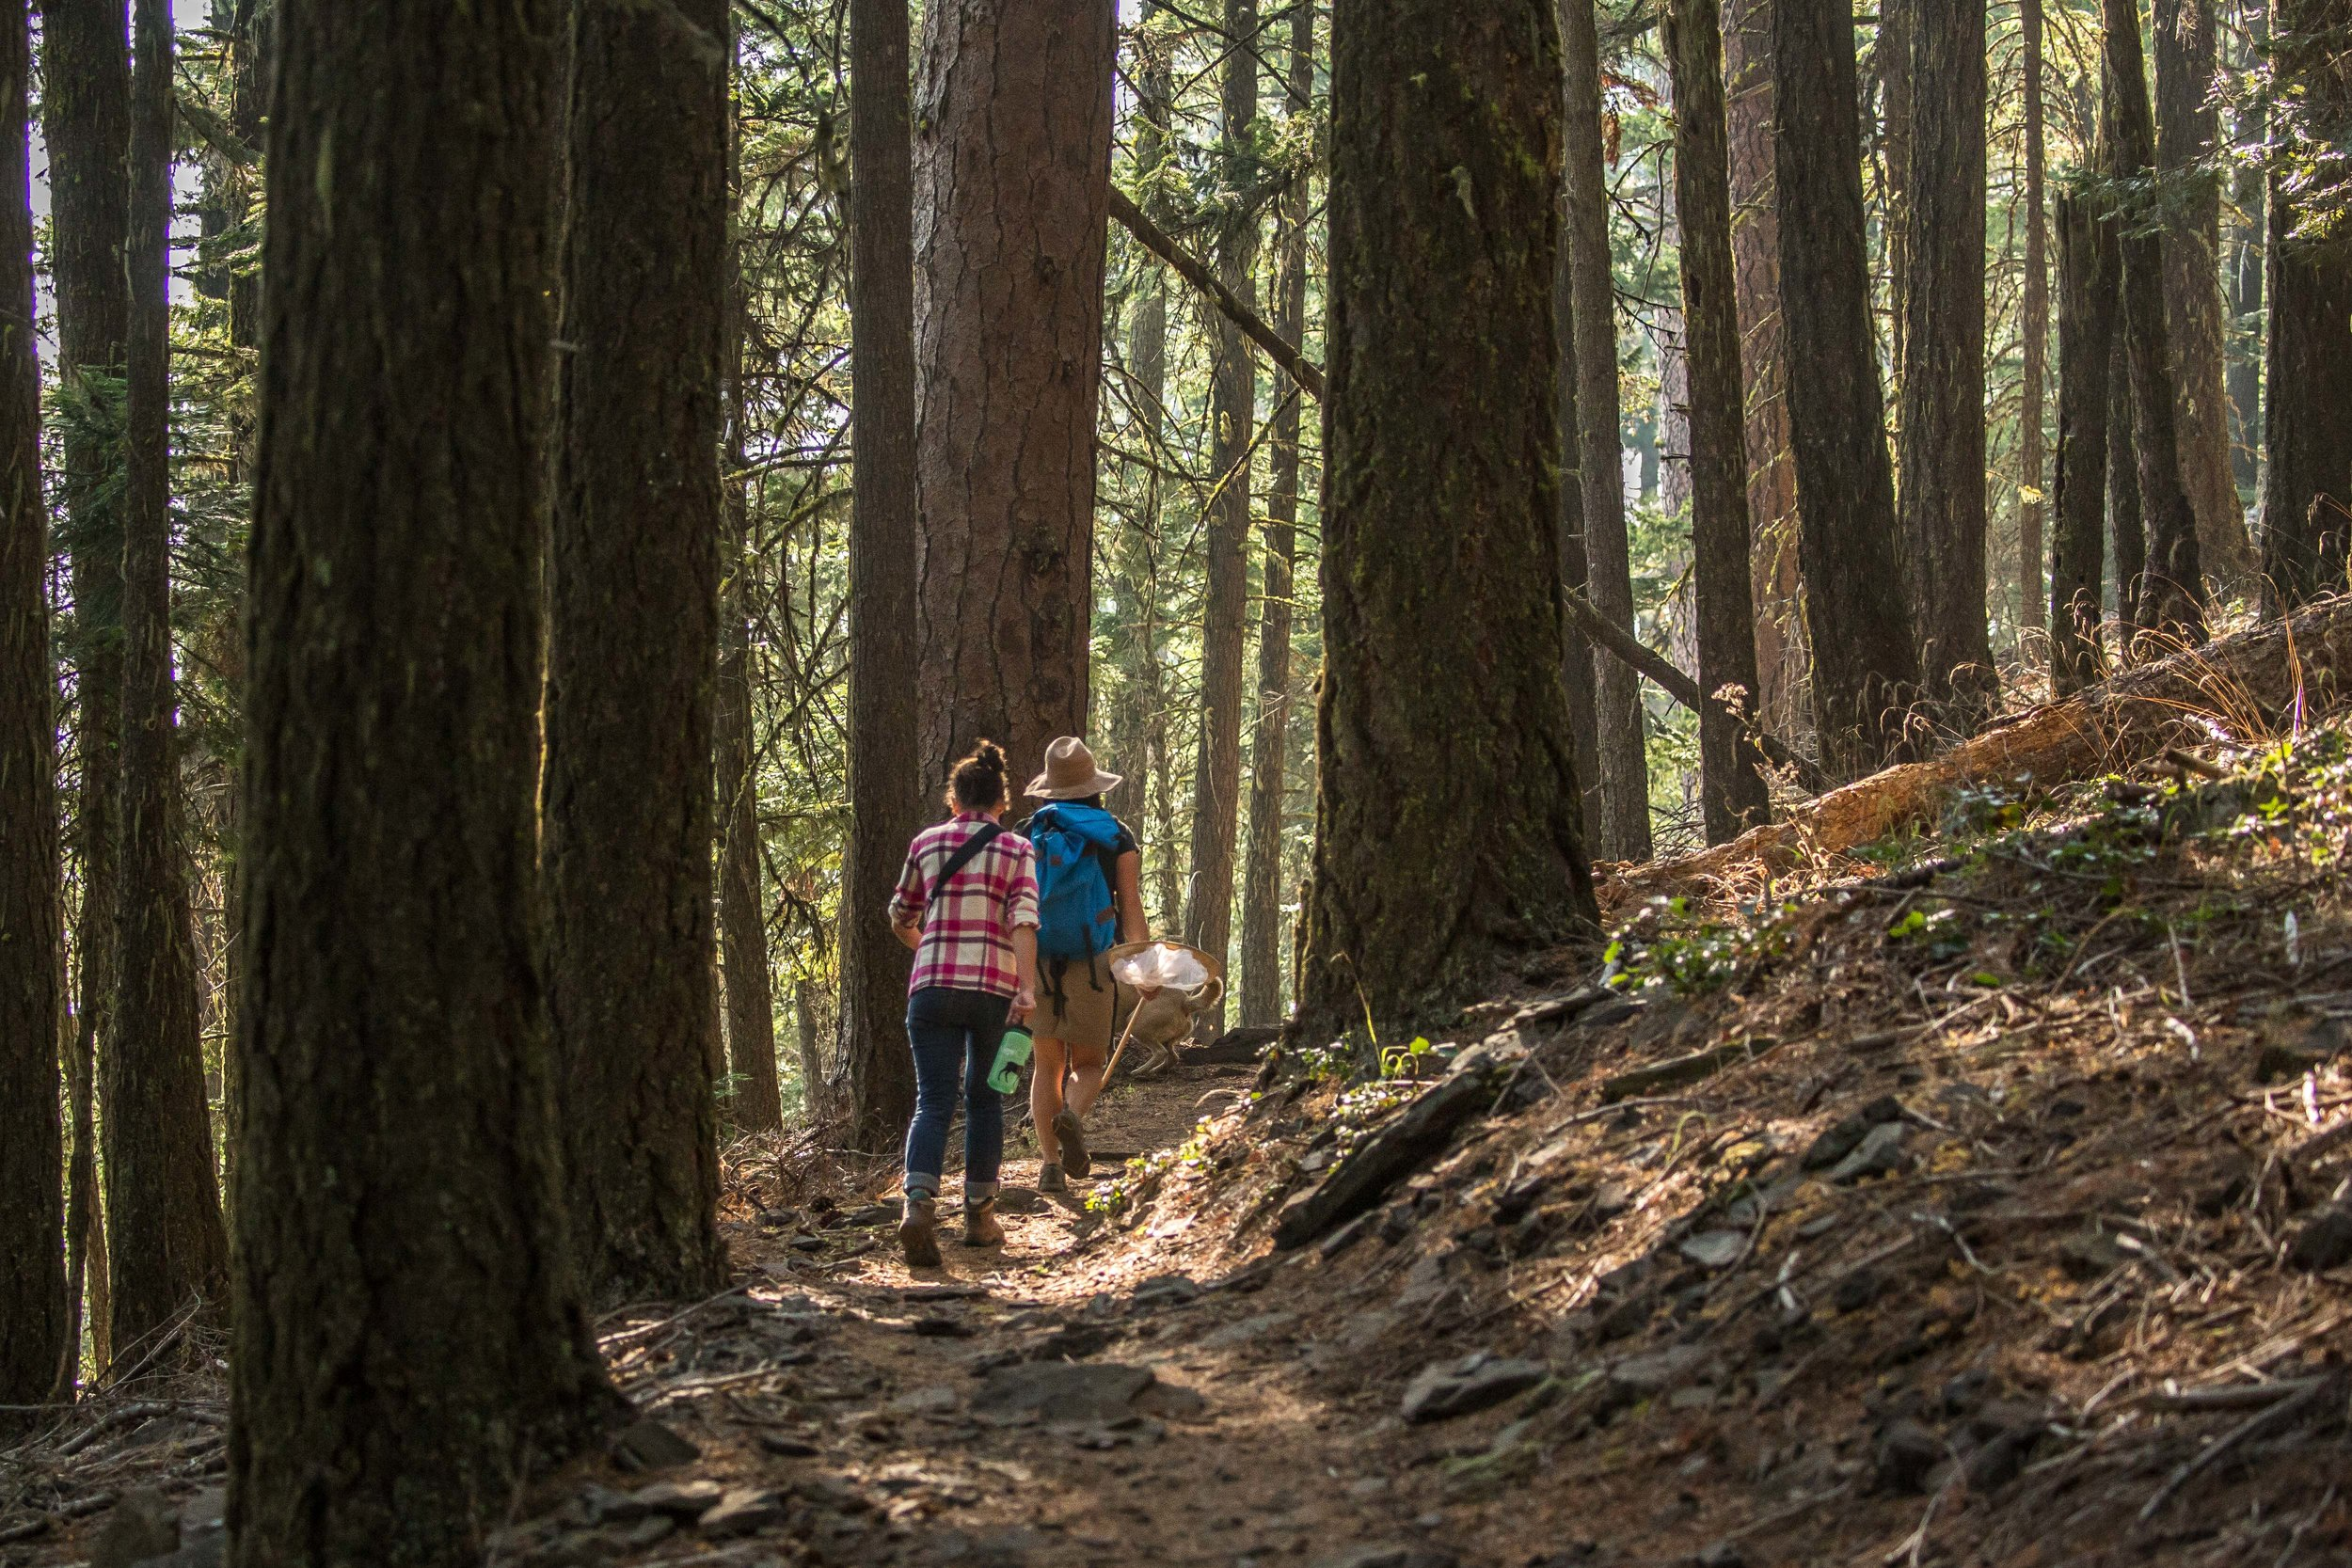 - Hiking along a section of the PCT with Jeanine Moy from KS Wild